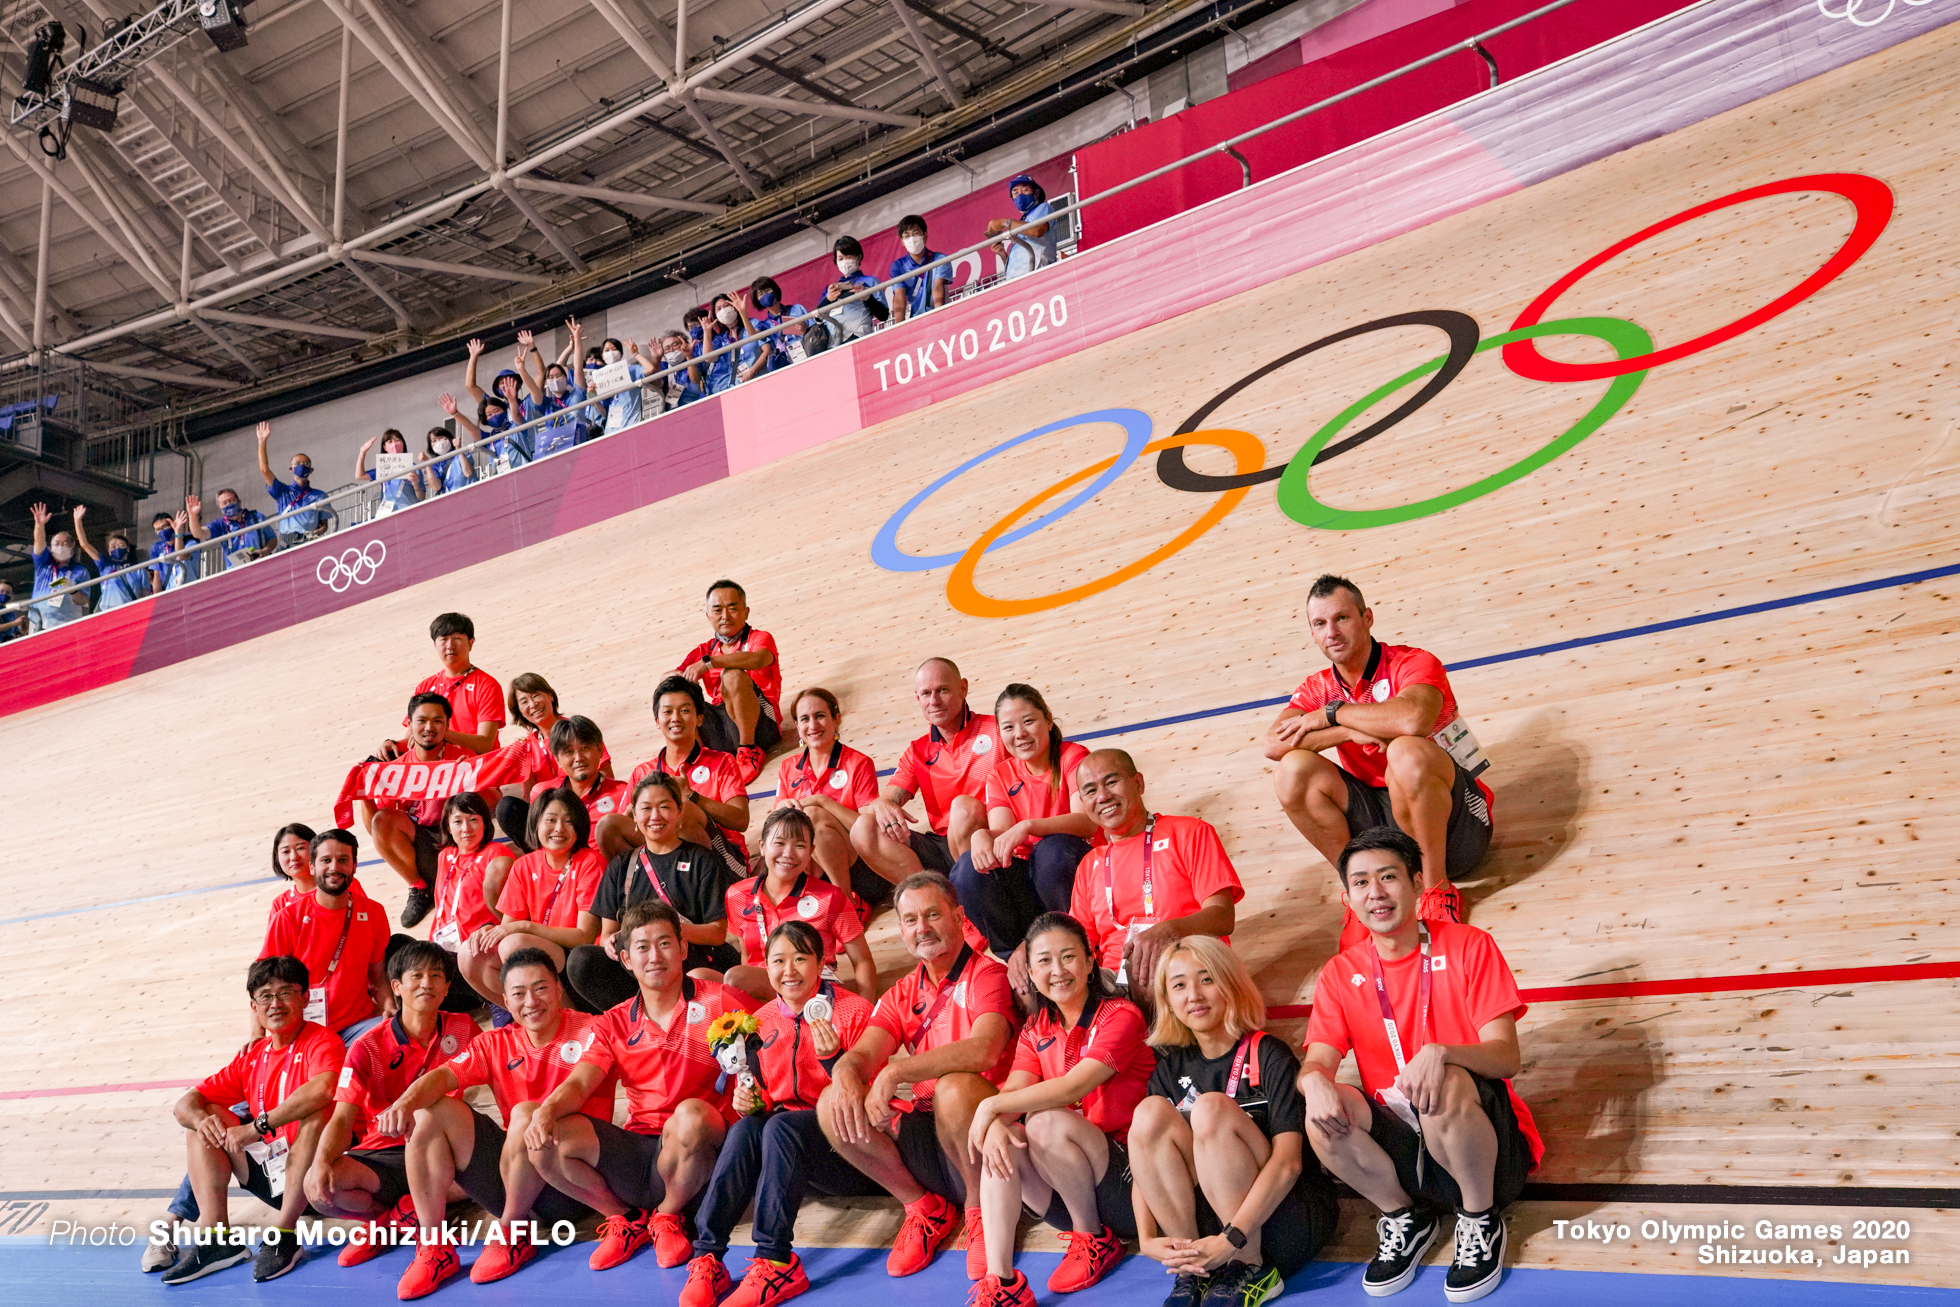 TEAM JAPAN AUGUST 8, 2021 - Cycling : during the Tokyo 2020 Olympic Games at the Izu Velodrome in Shizuoka, Japan. (Photo by Shutaro Mochizuki/AFLO)